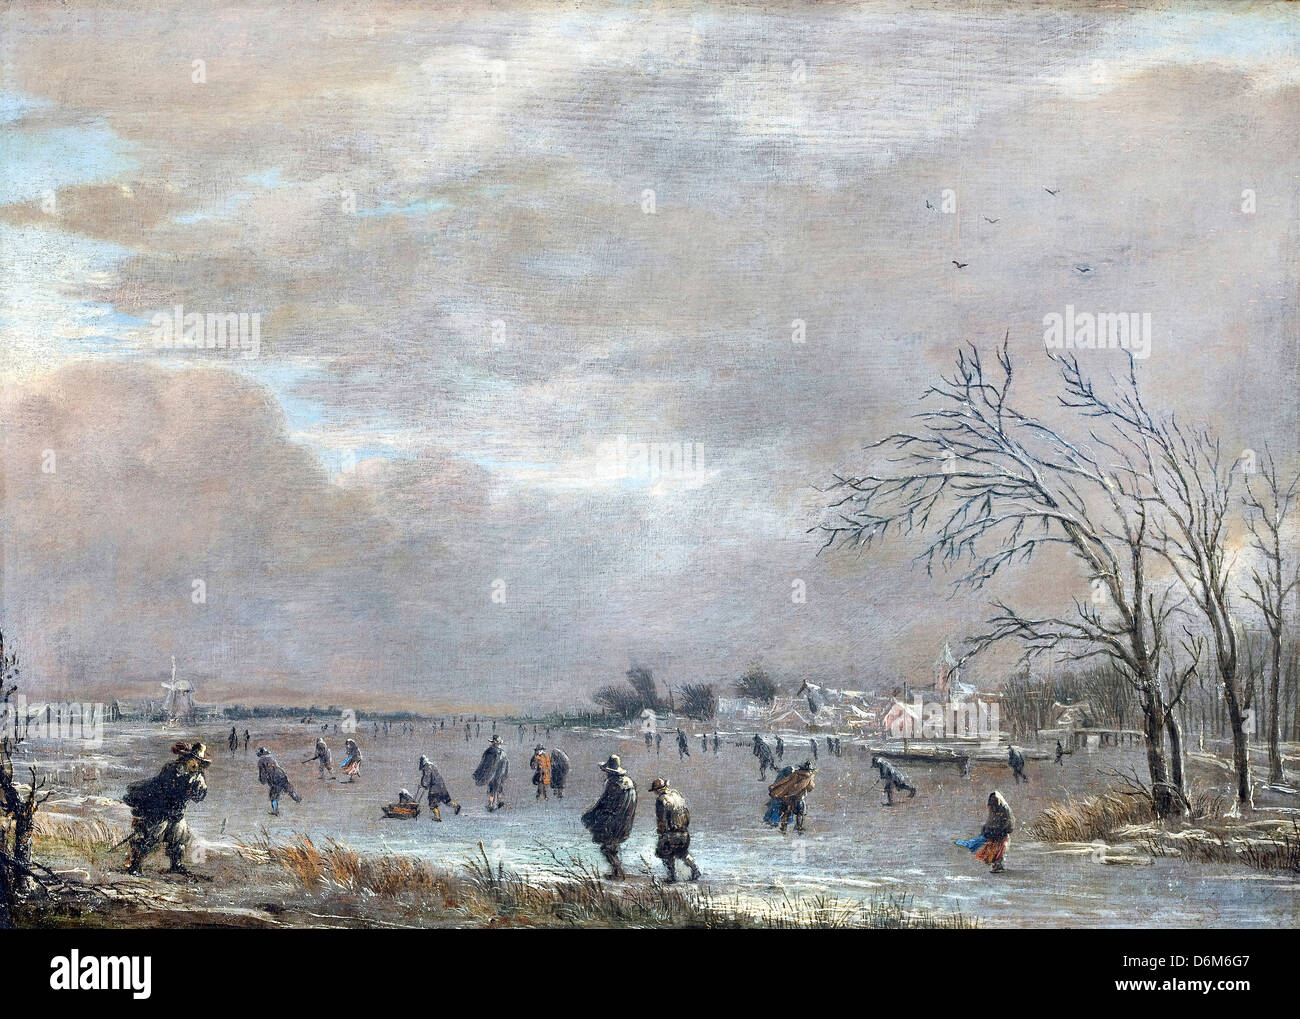 Aert van der Neer, Winter Landscape with Skaters on a Frozen River. Oil on canvas. Hallwyl Museum, Sweden - Stock Image